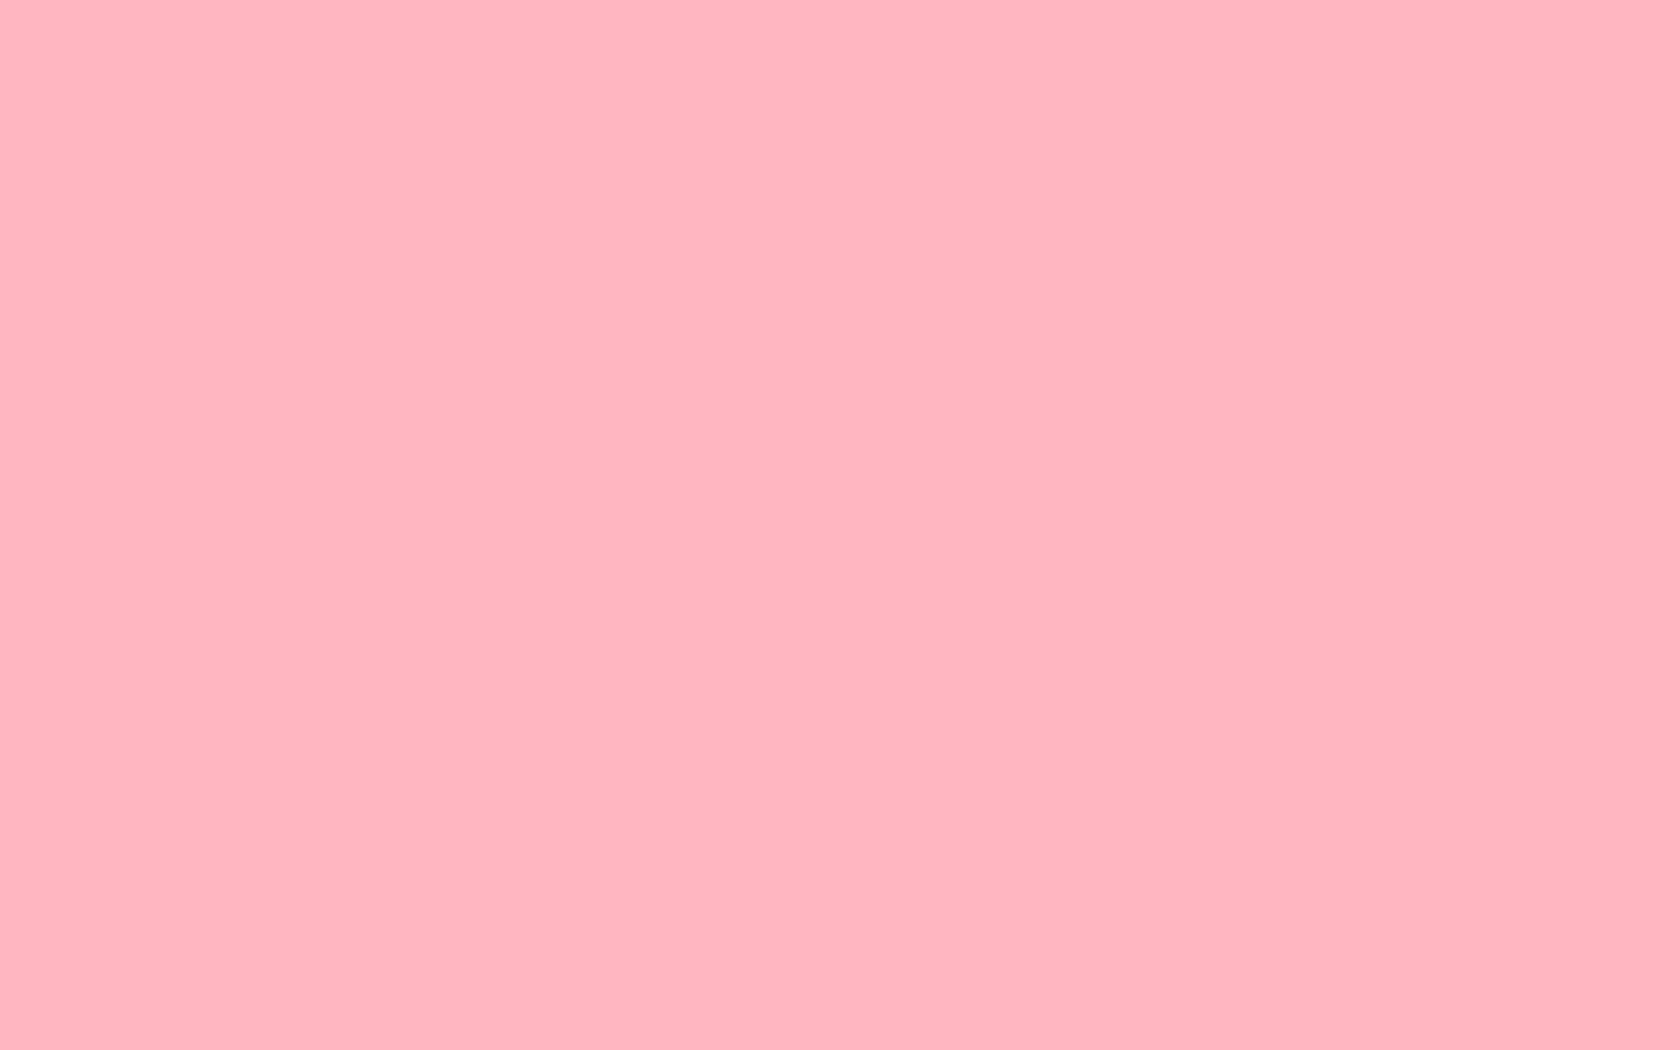 1680x1050 resolution Light Pink solid color background view and 1680x1050